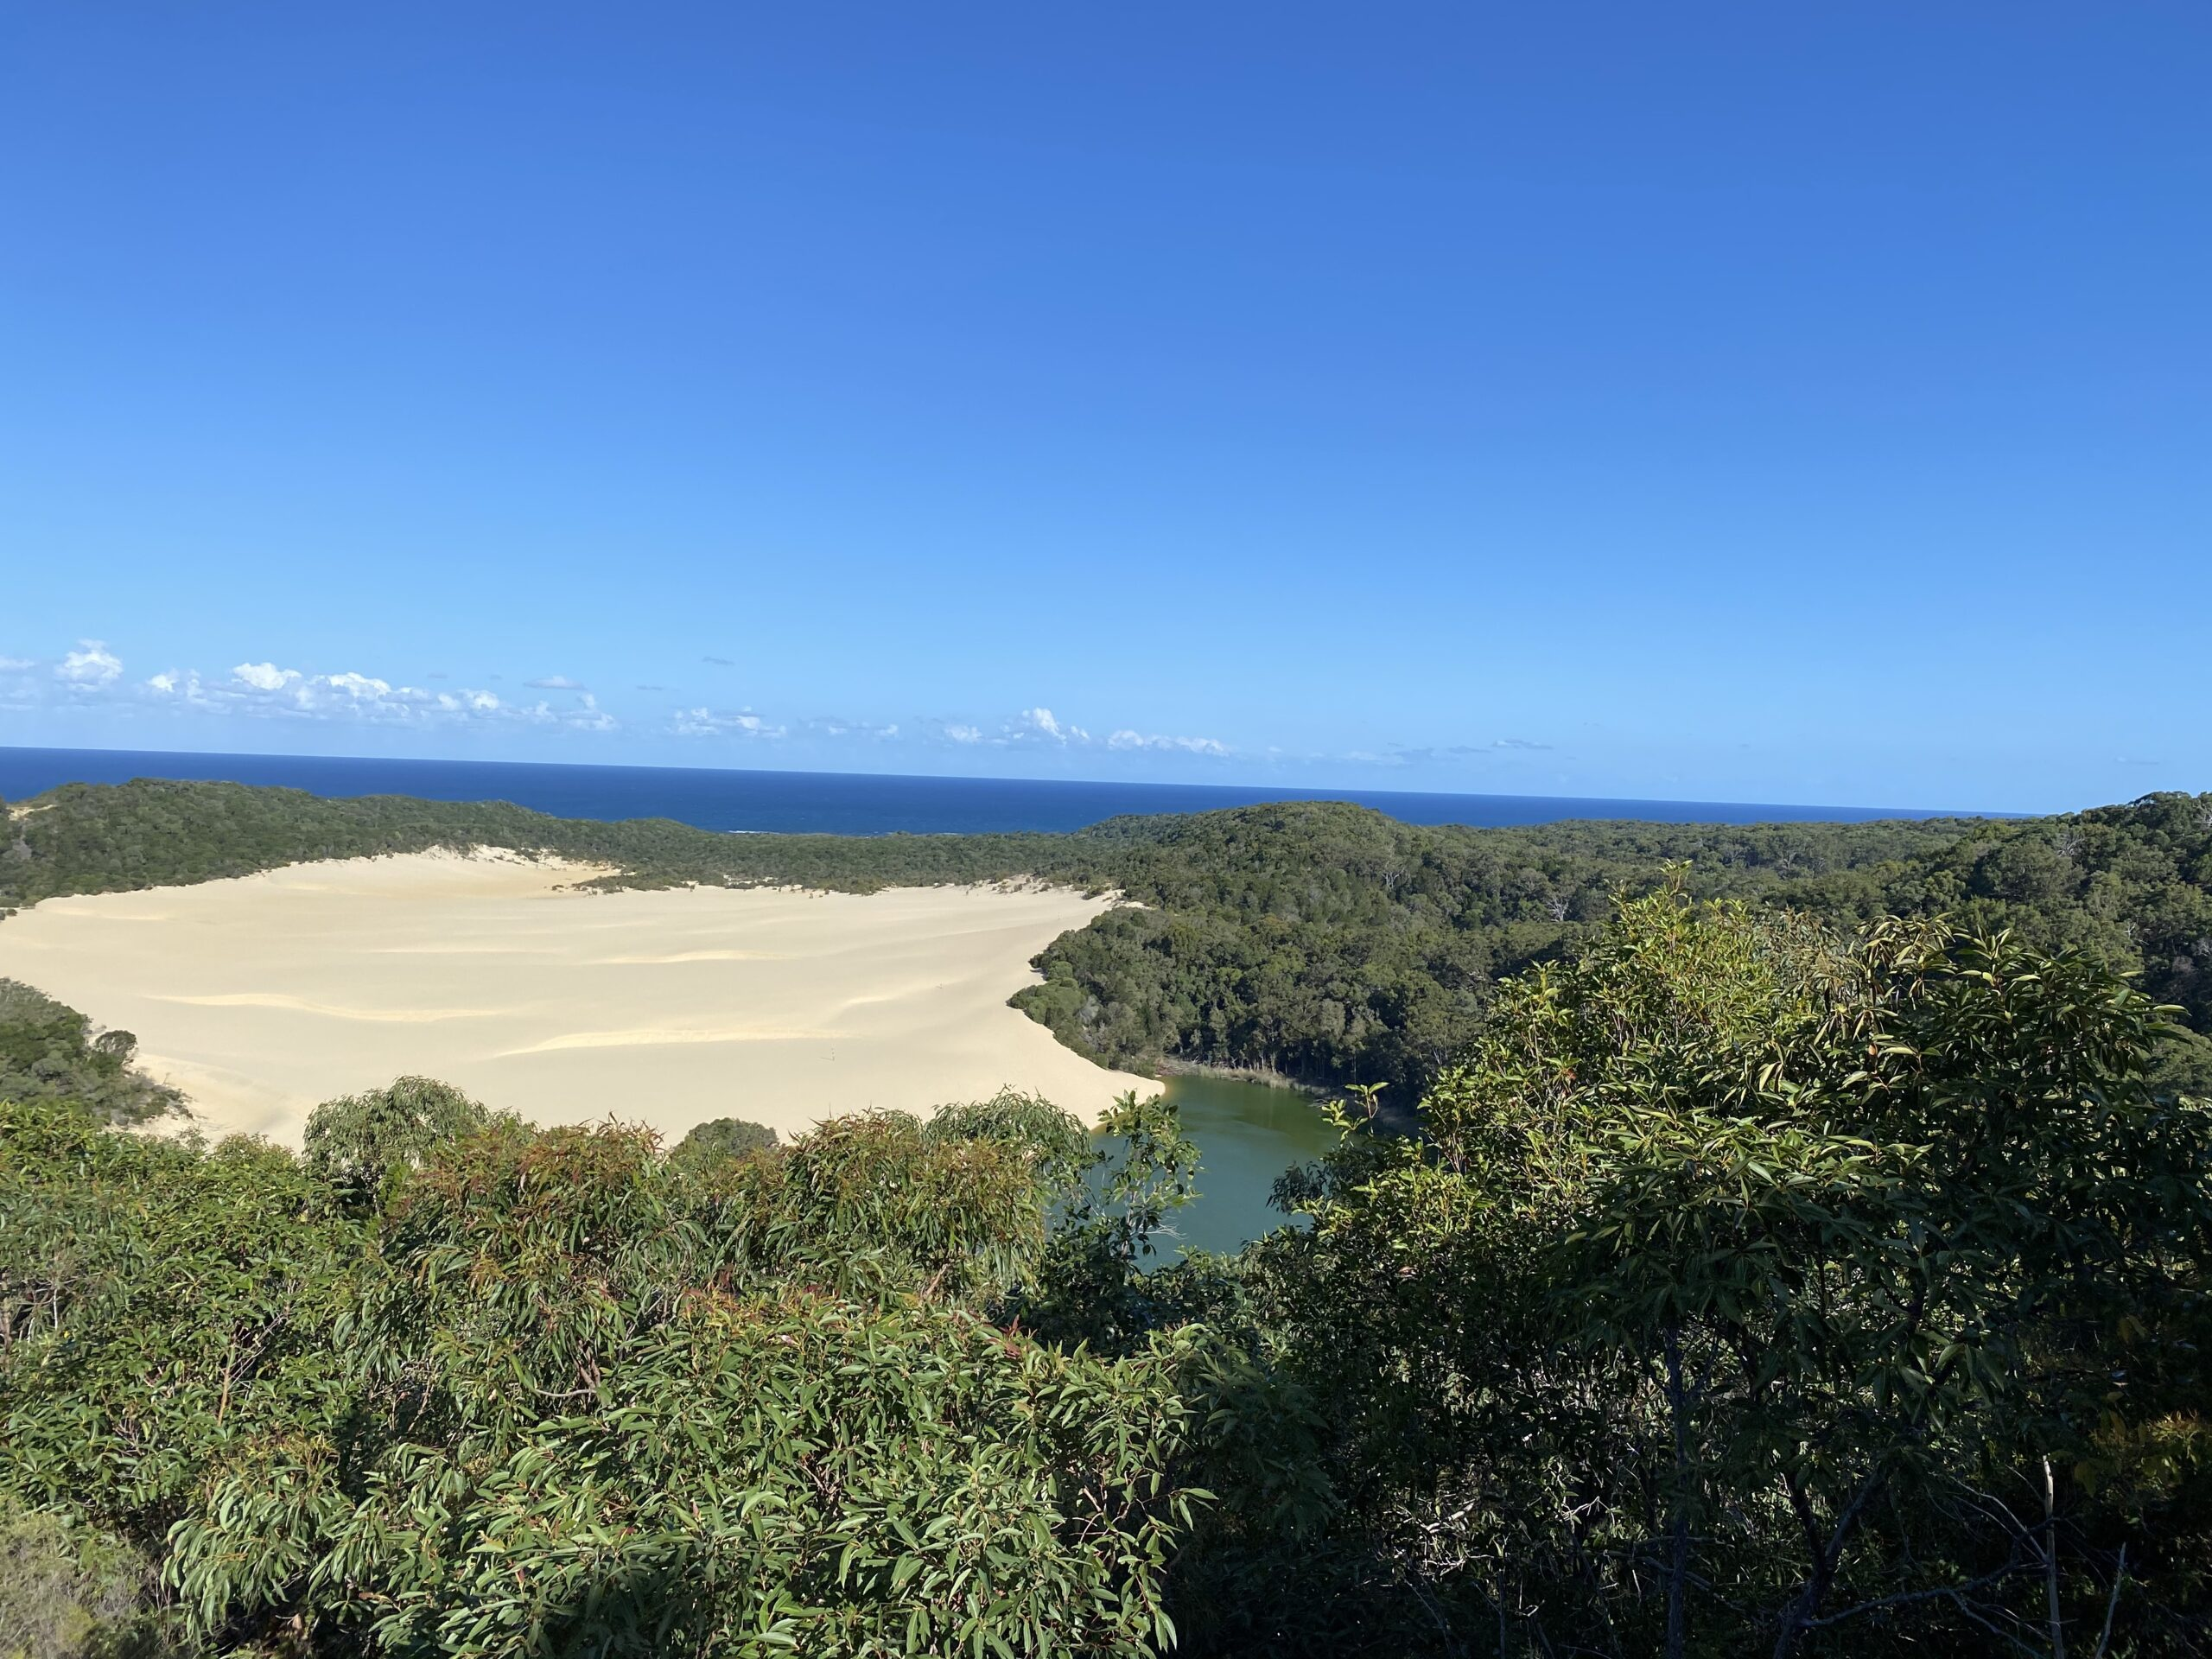 View of Lake Wabby from Lookout